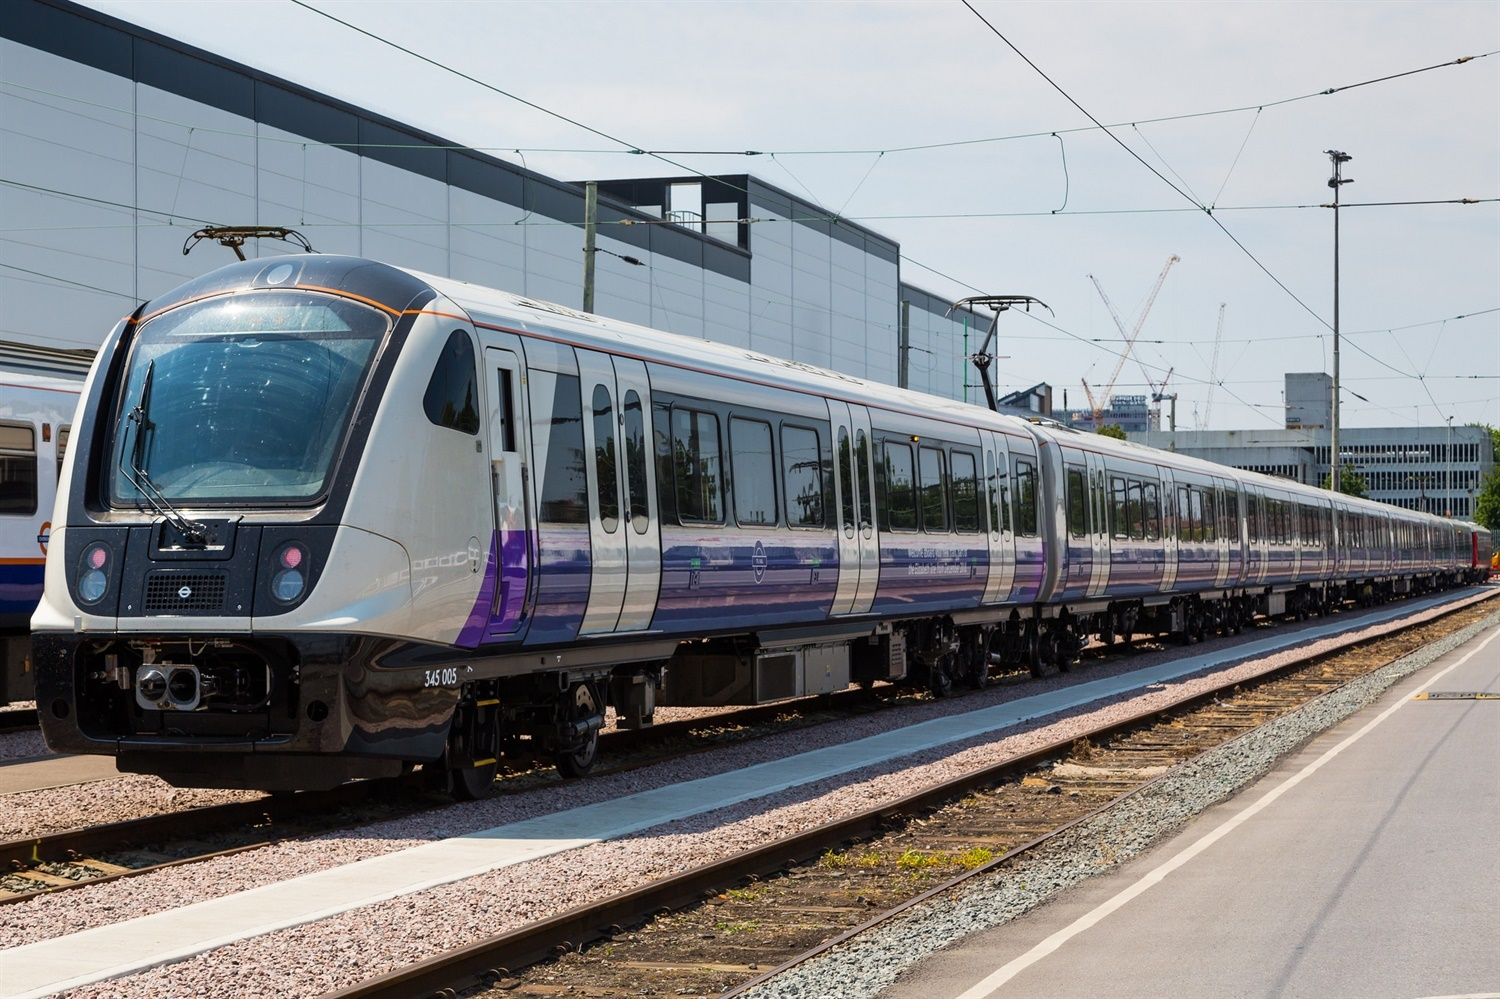 Elizabeth Line trains first to run without yellow front ends since steam era